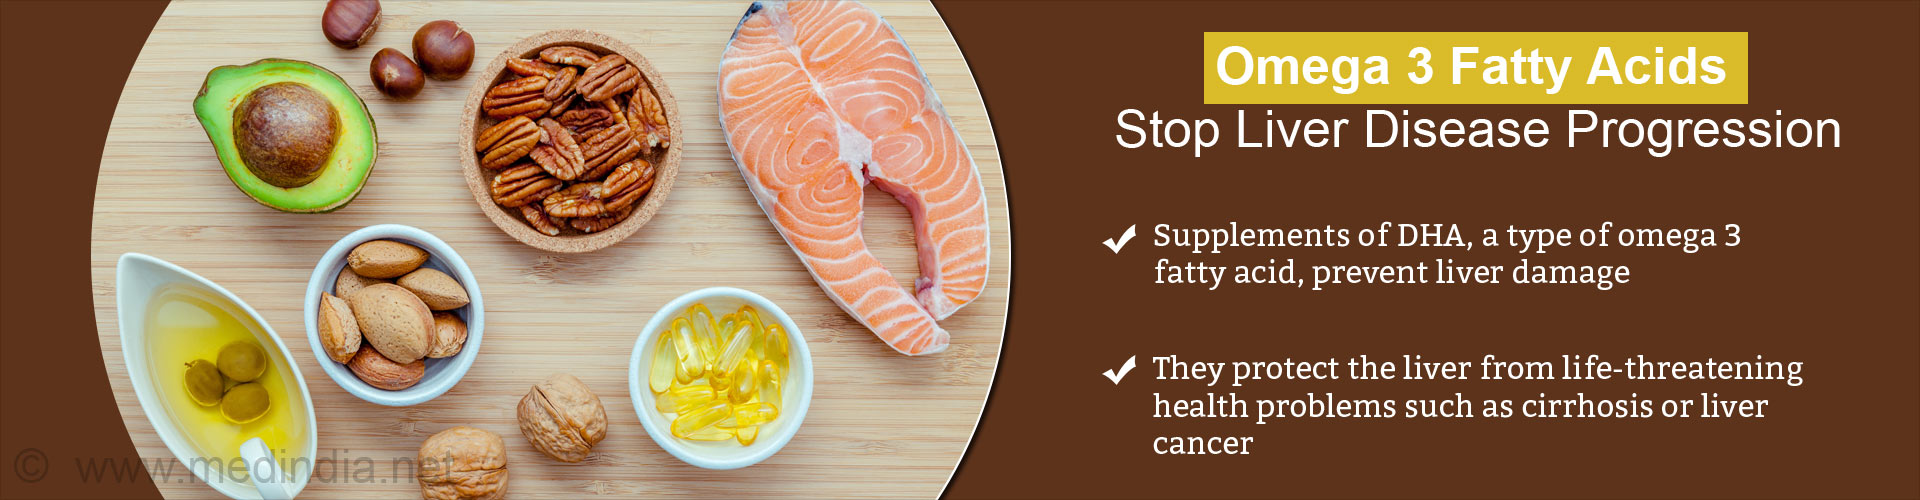 Omega 3 Fatty Acids Halt Progression of Liver Disease, Prevent Liver Damage